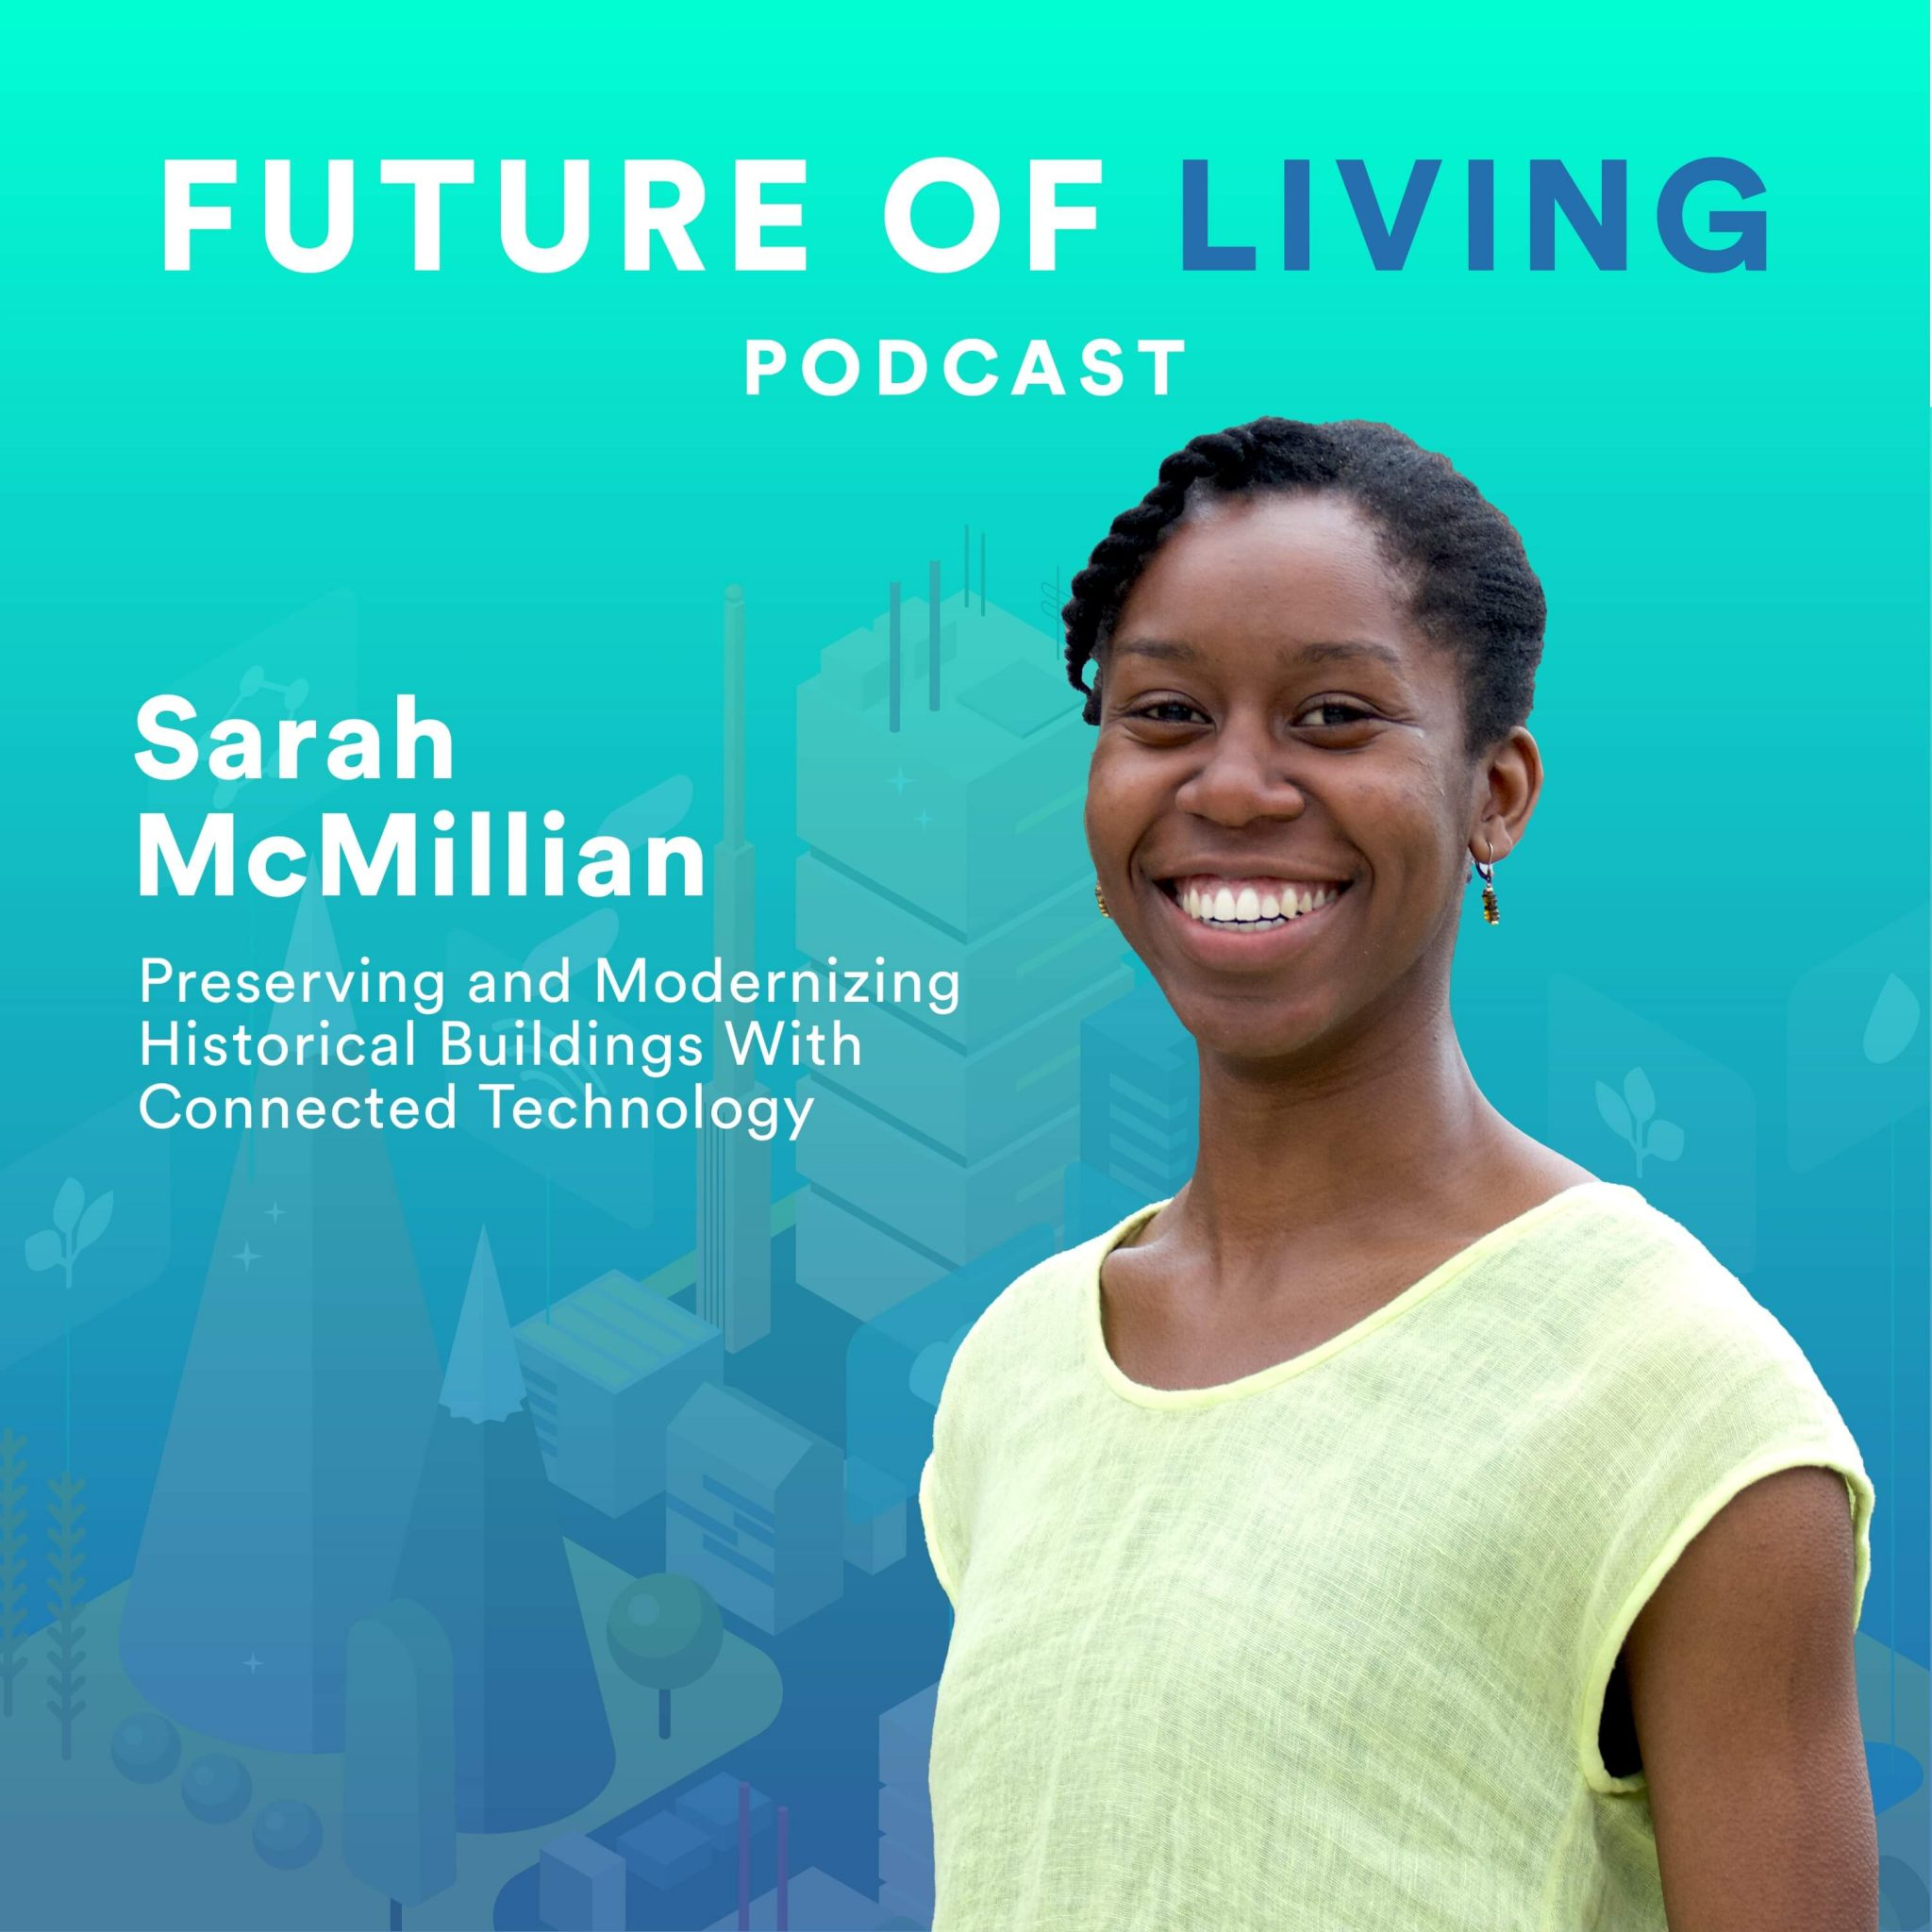 Sarah McMIllian on the Future of Living Podcast with Blake Miller